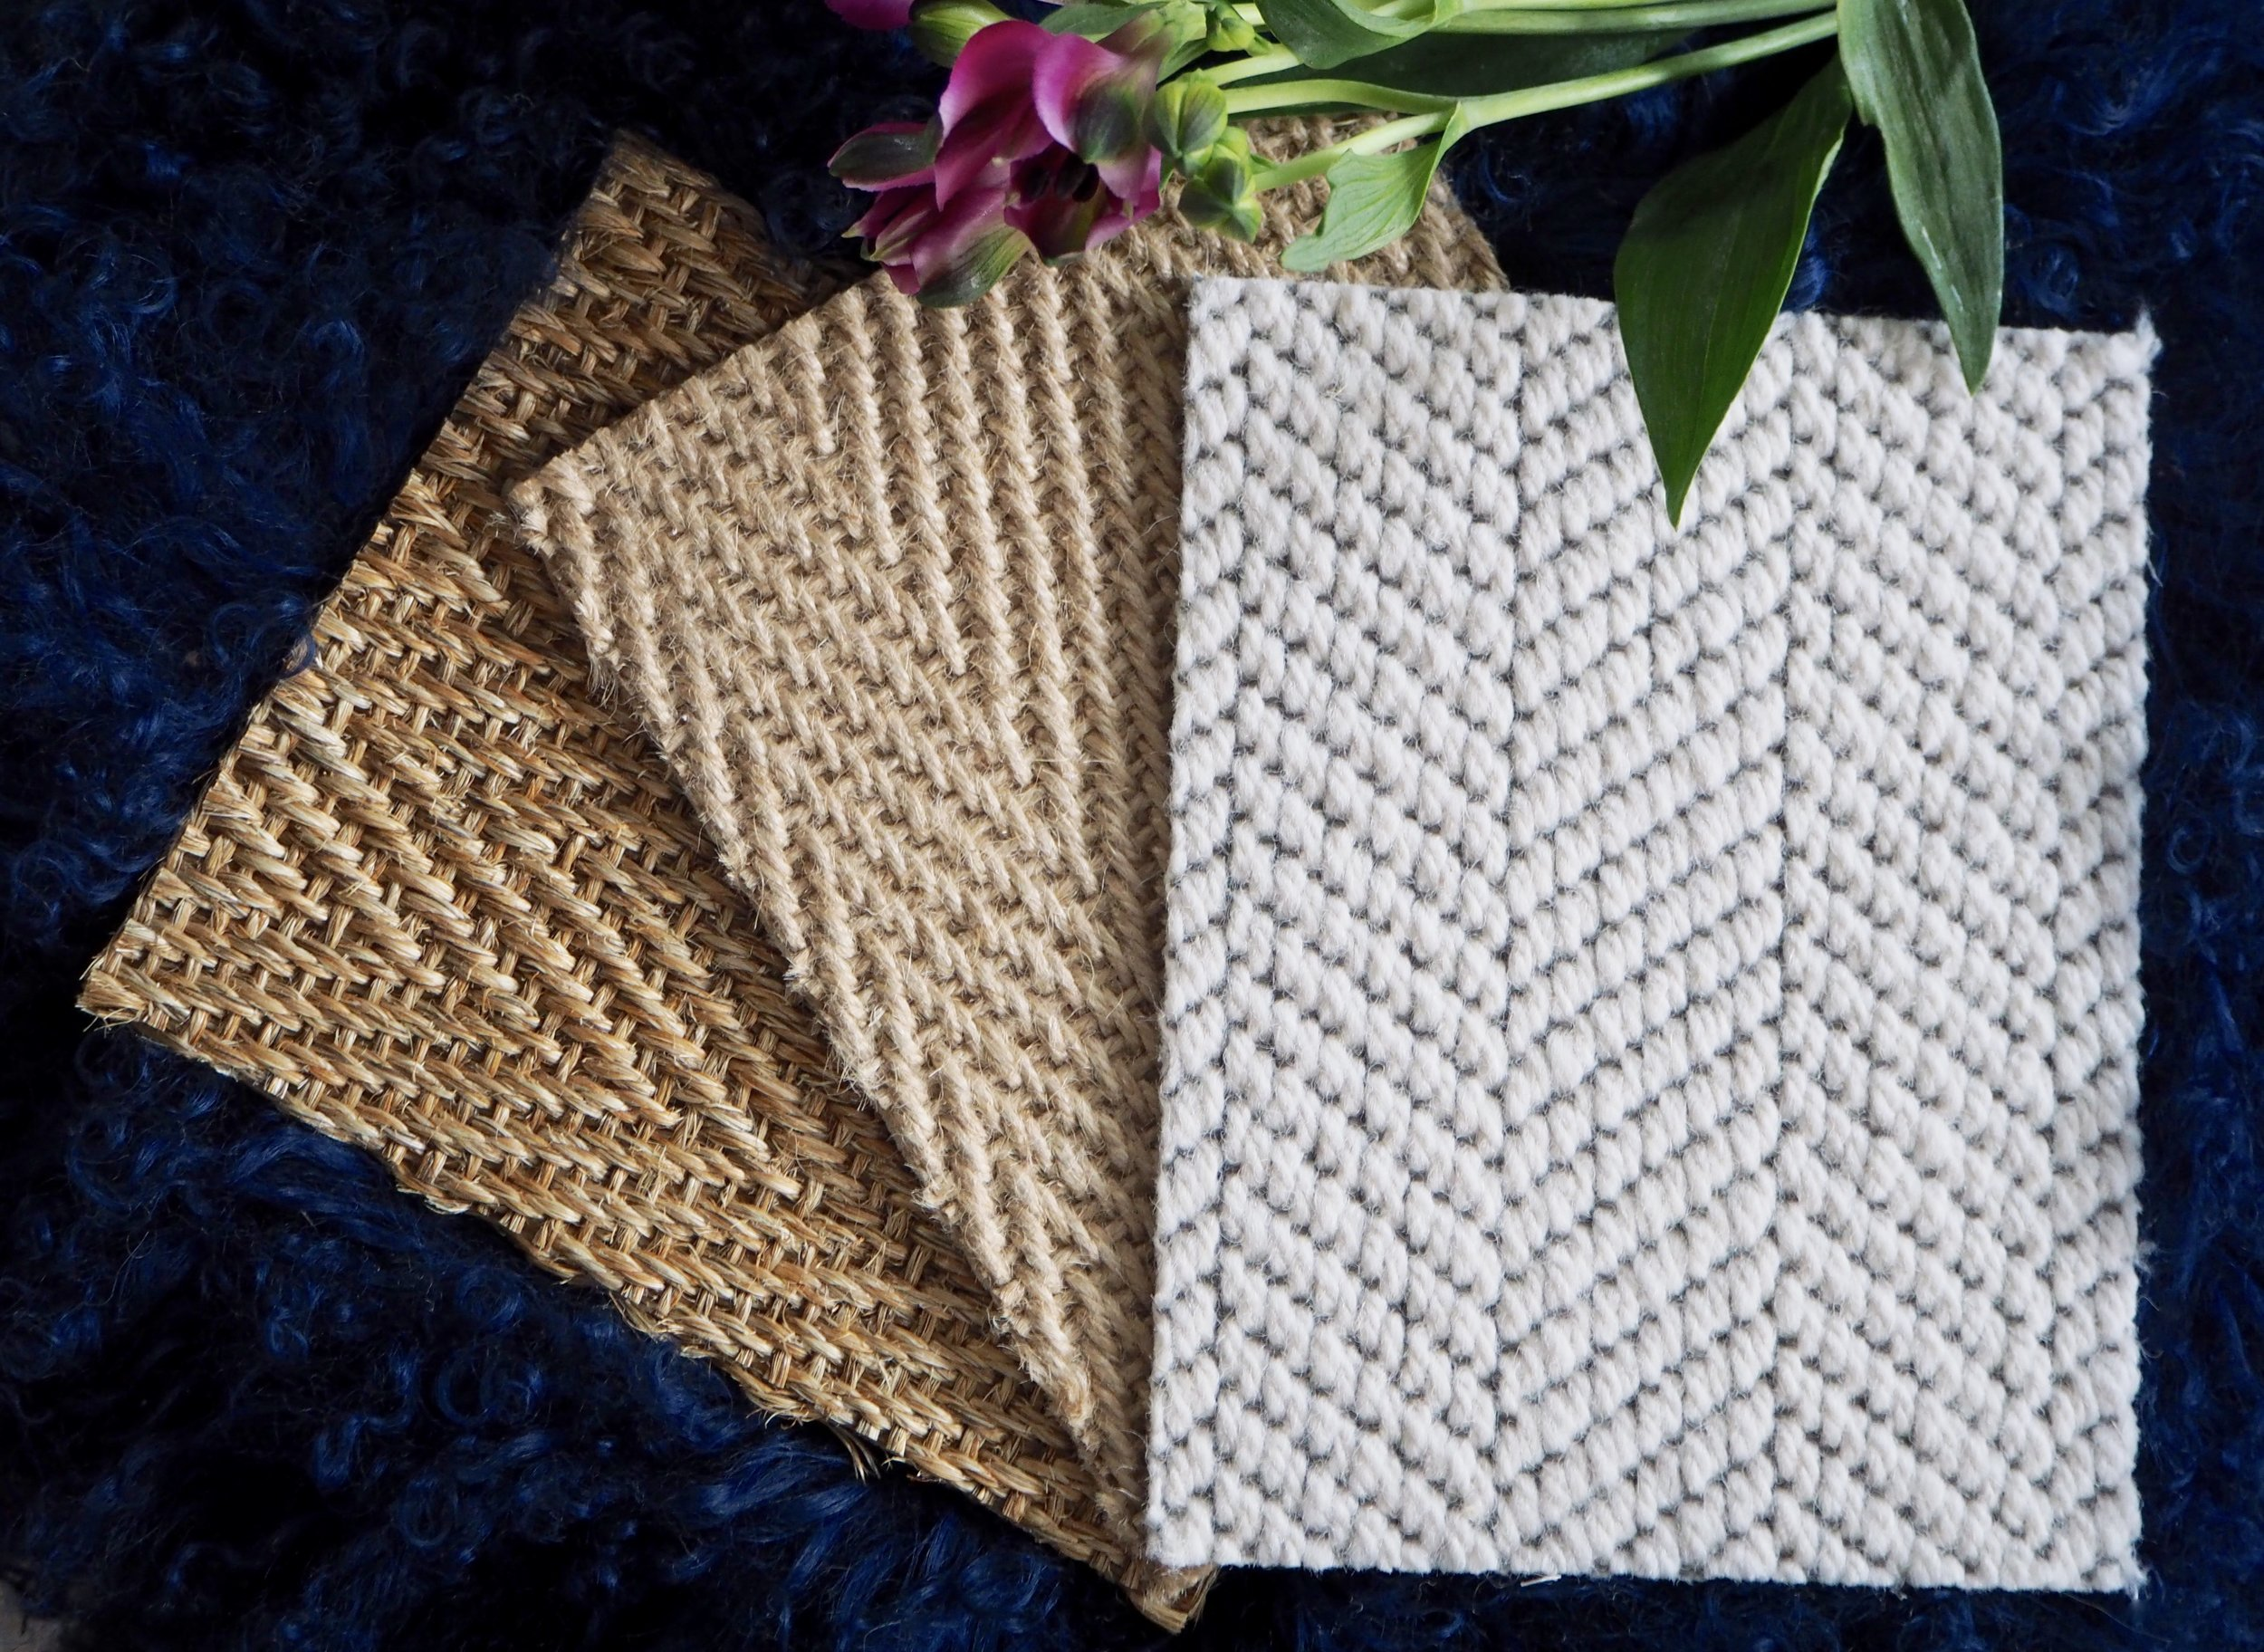 Wool Cascade - 101 Light Cloud    /    Jute - Herringbone    /     Sisal Herringbone -  Her120 Biscuit